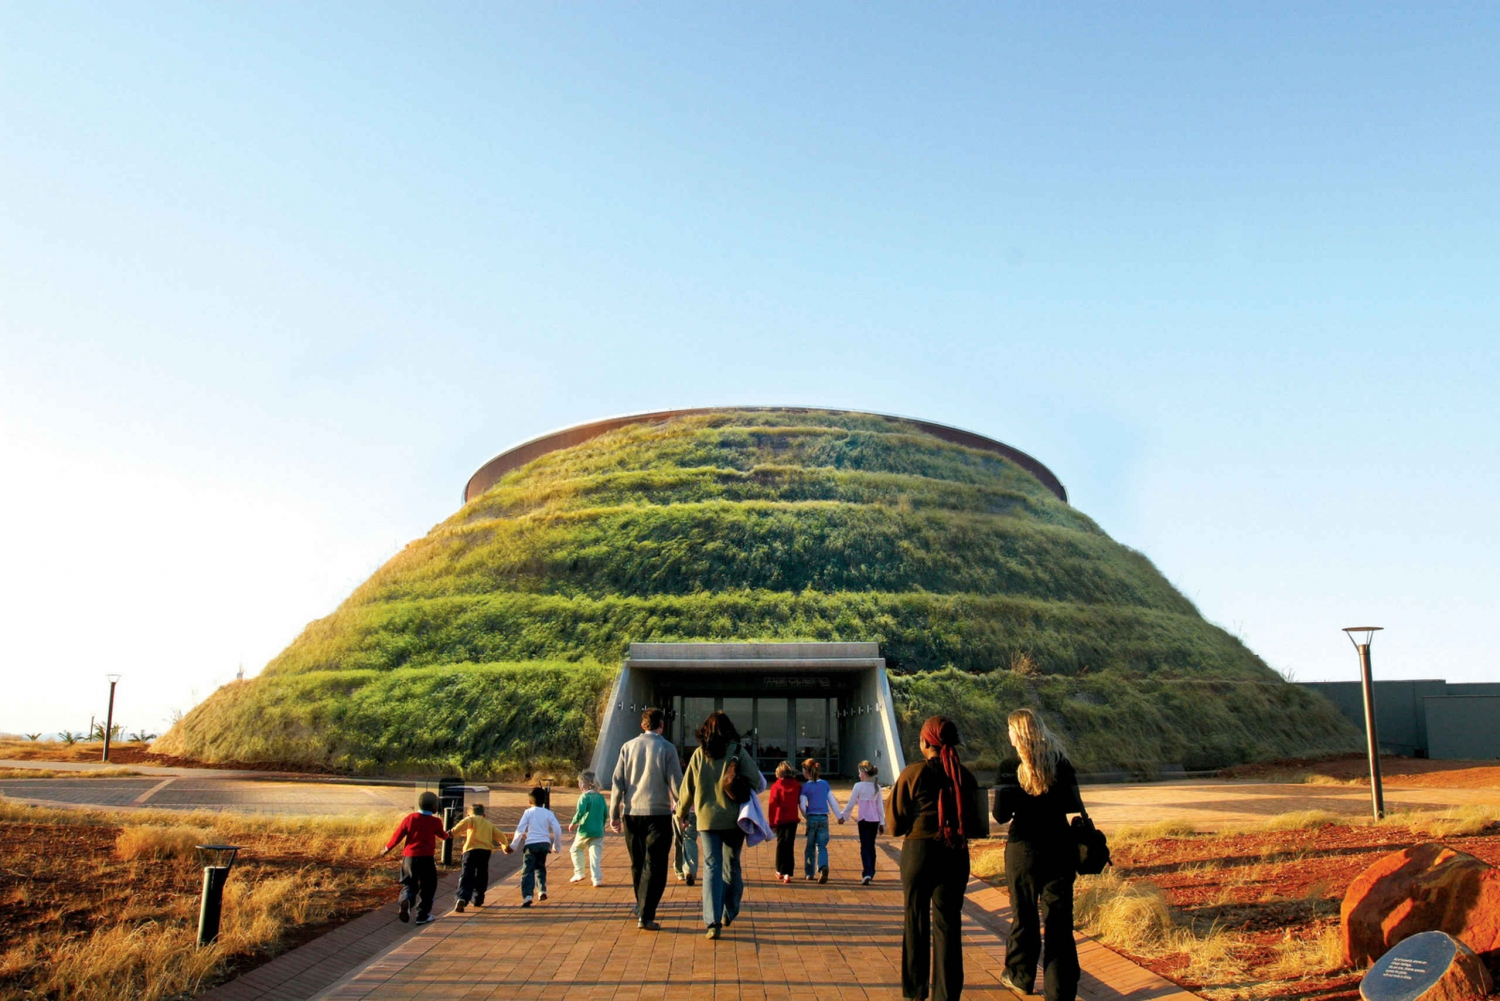 From Cradle of Humankind Half-Day Shared Tour